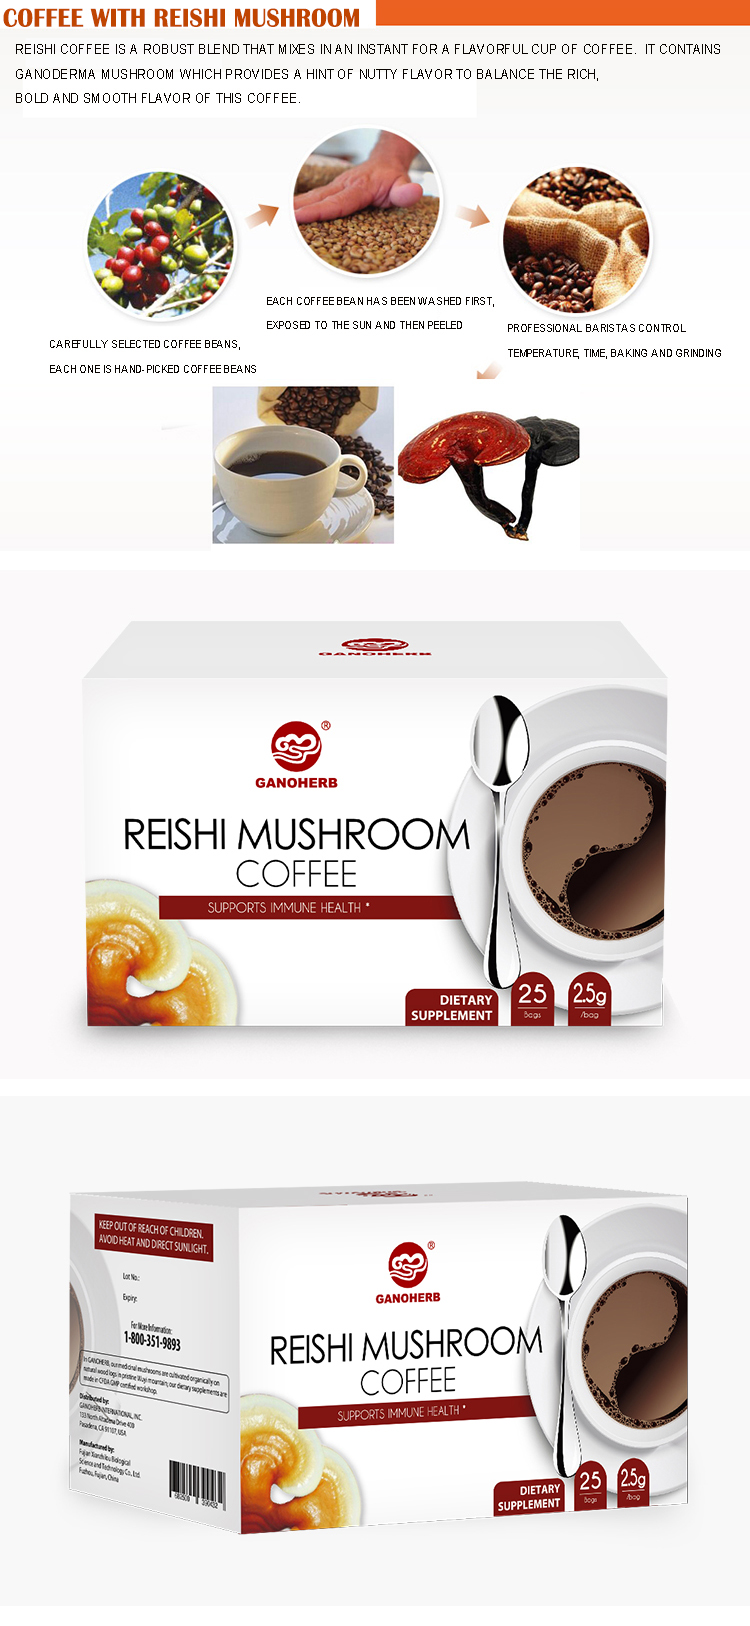 PRIVATE LABEL Reishi Mushroom Flavored Instant Coffee 3 in 1